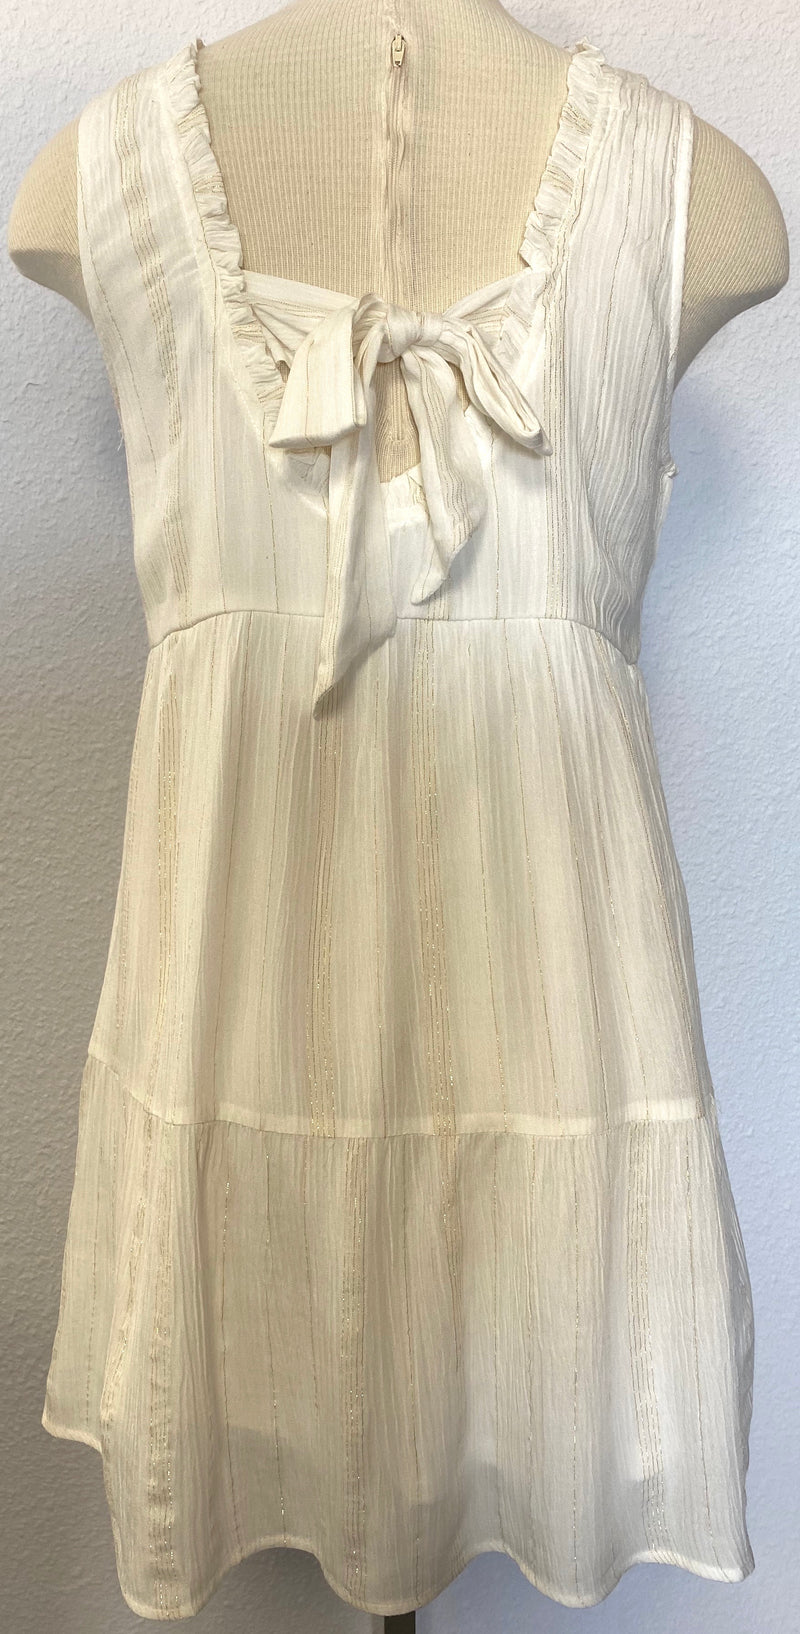 BABYDOLL LUREX TIE DRESS